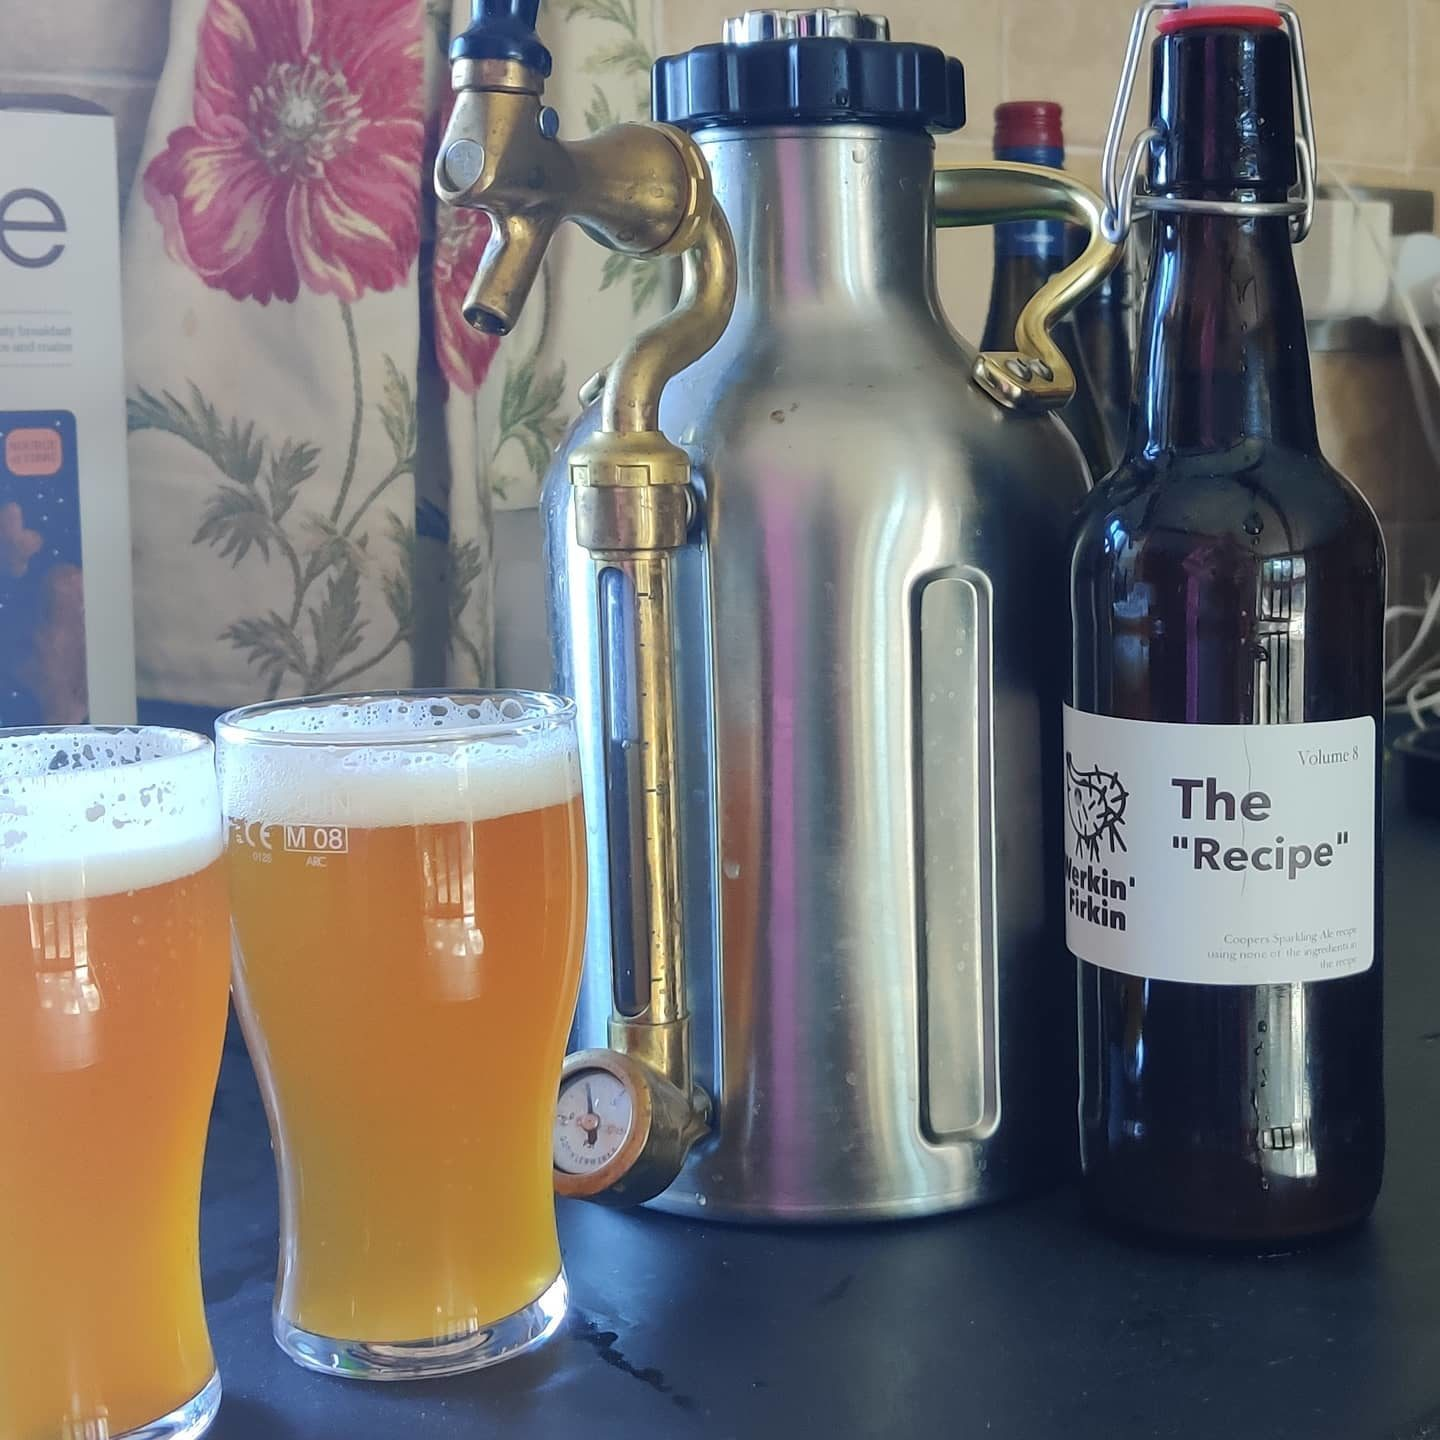 The 8th instalment in our homebrew adventures – we call this one The Recipe. Its loosely based on a Coopers Sparkling Ale recipe, except we didn't actually have any of the ingredients mentioned. So, same proportions but different gear. Using a Kveik yeast. Verdict? Probably won't kill you.